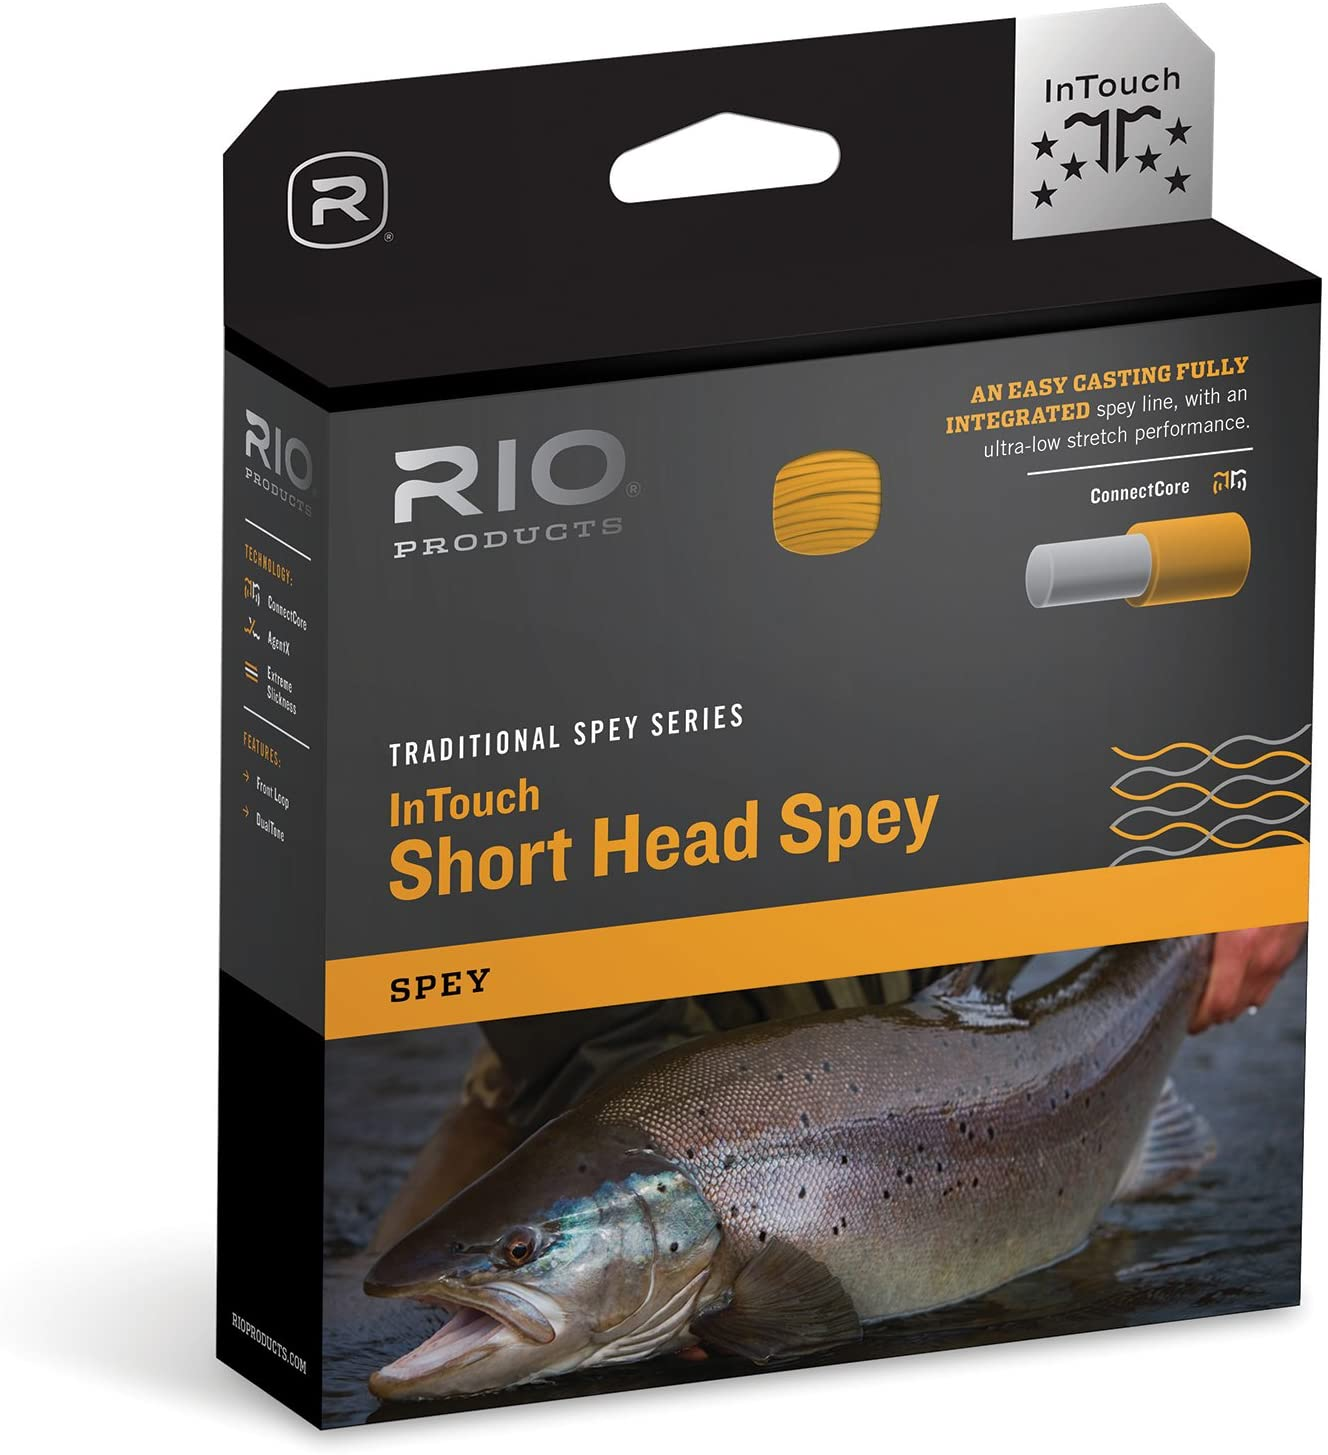 RIO Products Fly Line Intouch Shorthead Spey 7/8, Blue-Orange-Straw